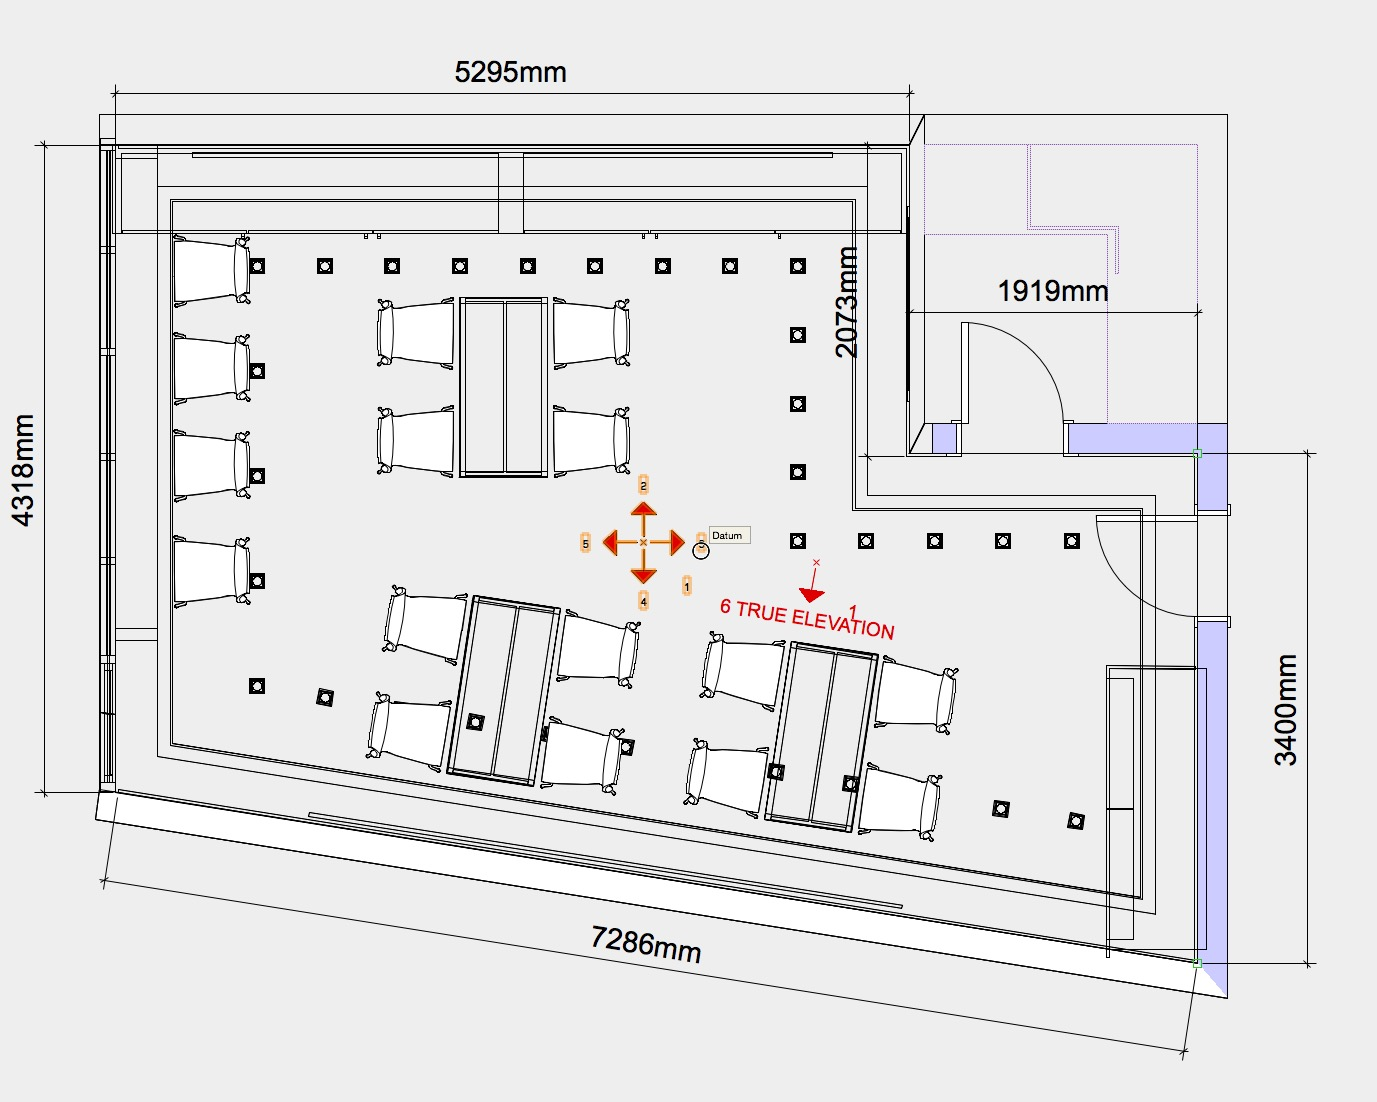 Elevation Plan Interior : New interior wall elevations general discussion